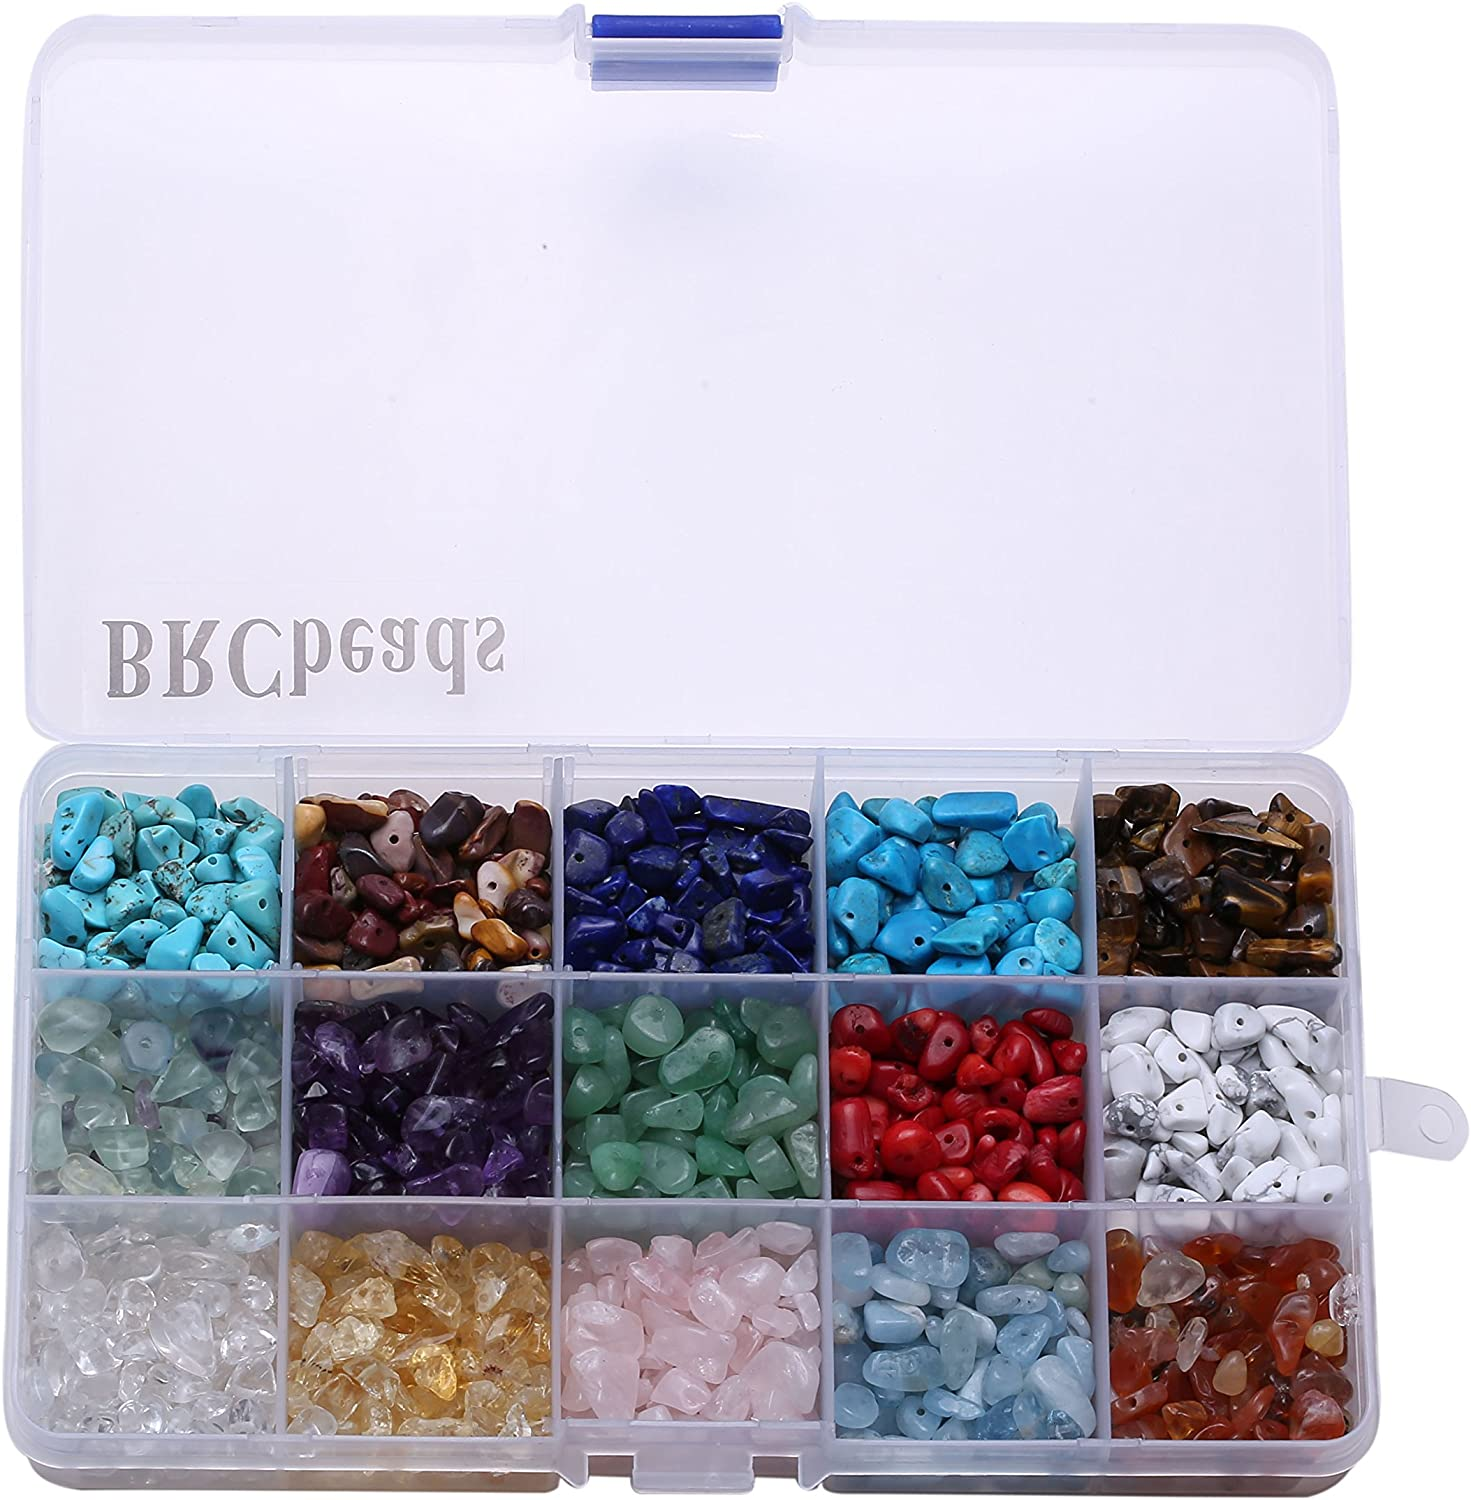 Gacuyi Natural Gemstones Beads Chakra Chip Stones Crushed Pieces Irregular Shaped Healing Drilled Loose Beads for Earring Bracelet Jewelry Making Home Decoration Alabaster Crystal Chips 1 Strand